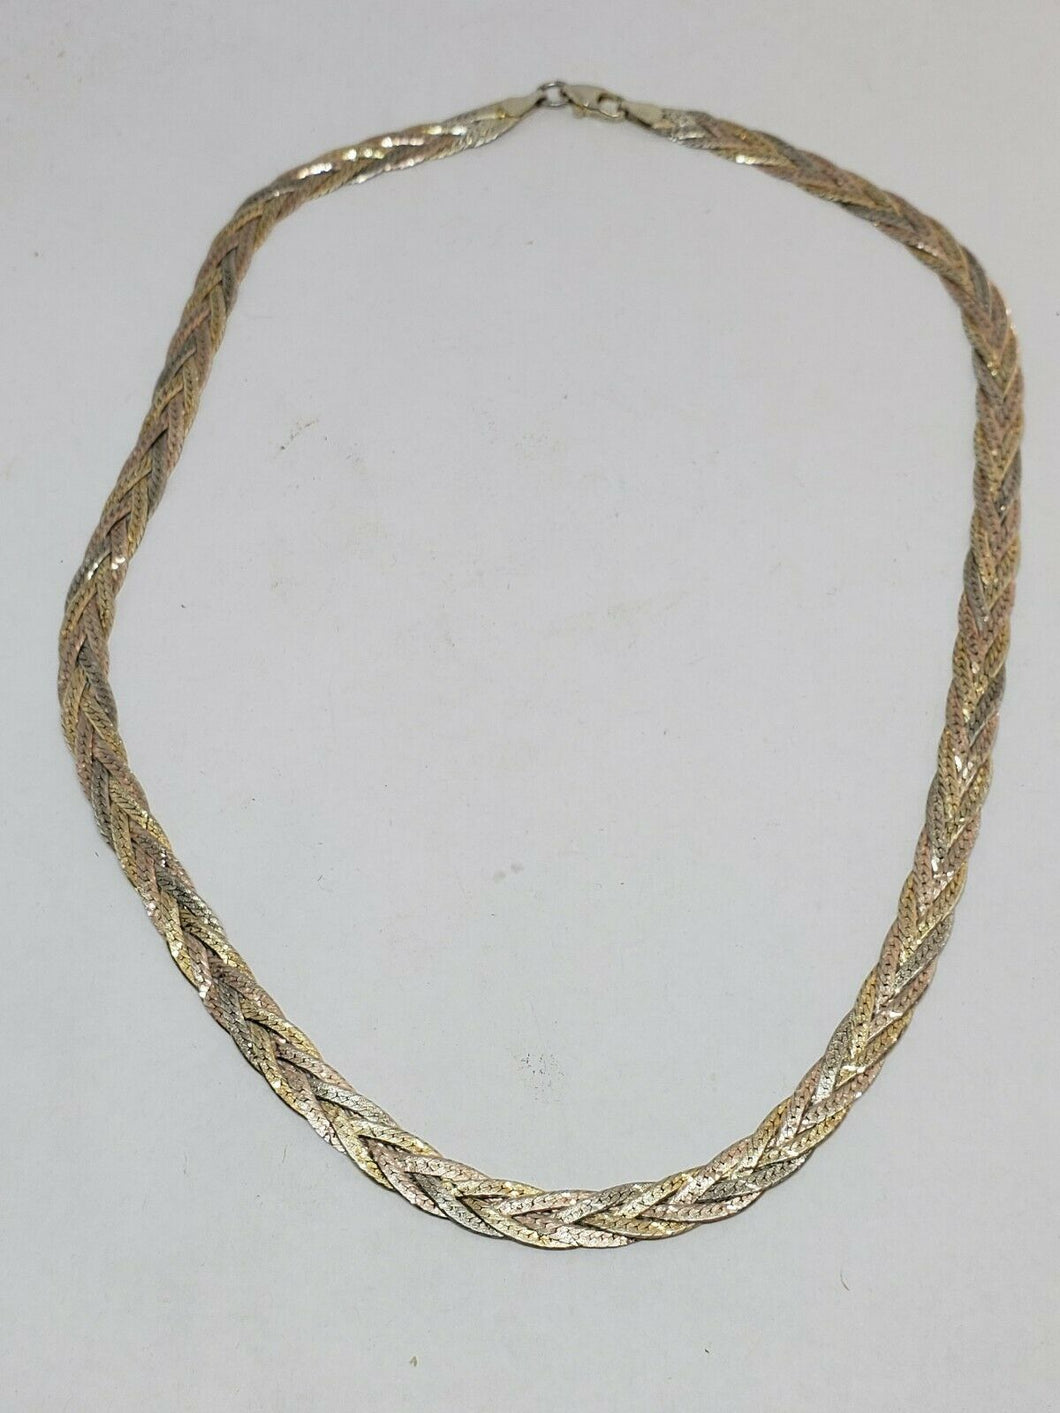 Vintage Italy Sterling Silver Tri-Color Gold Plated Herringbone Braided Necklace